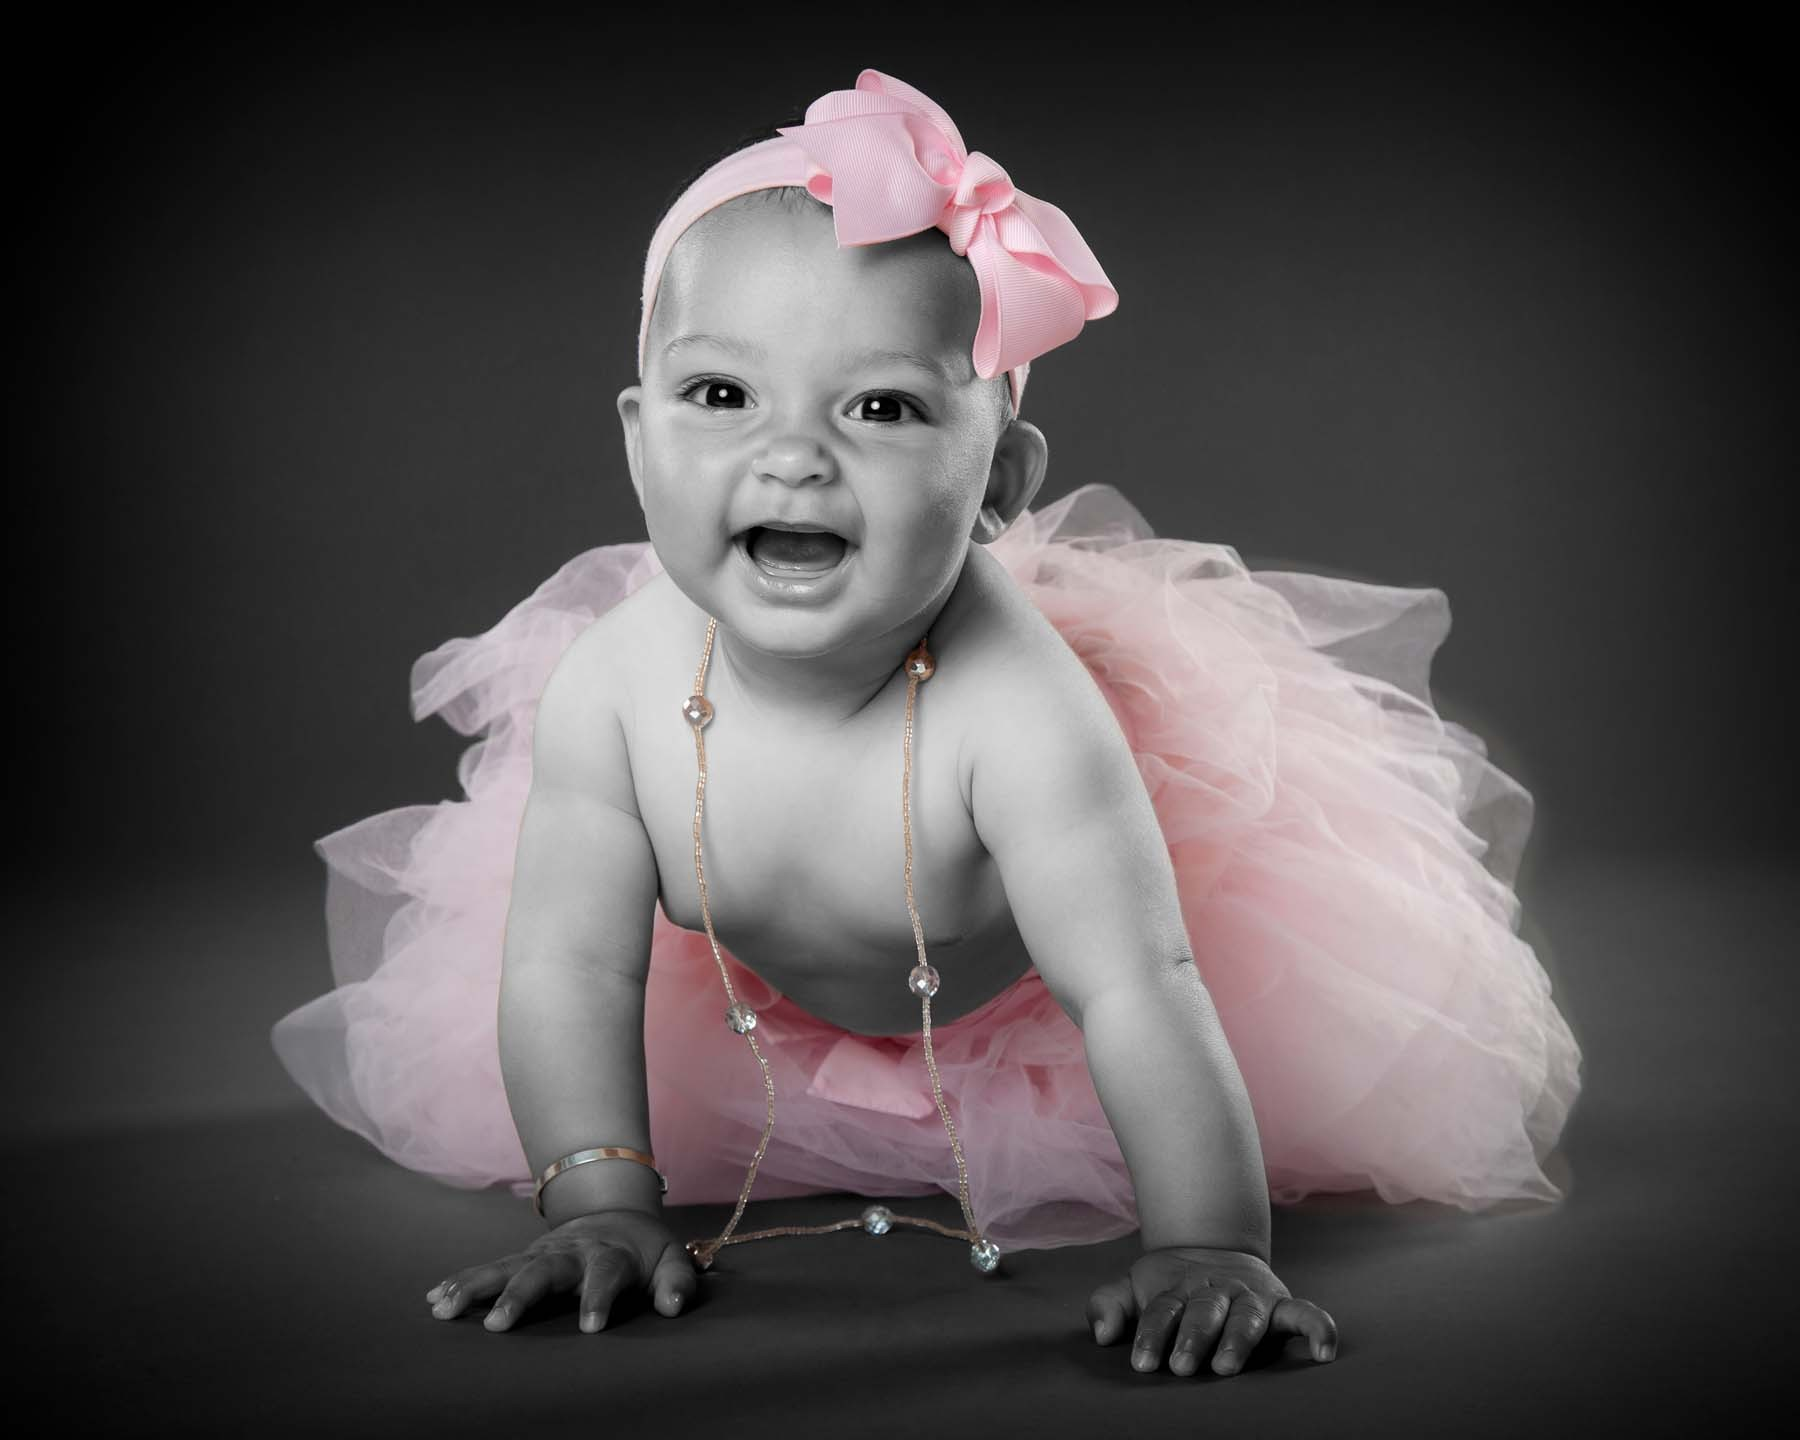 Newborn Baby Photographer in Sussex & Surrey, East Grinstead & Crawley (10)